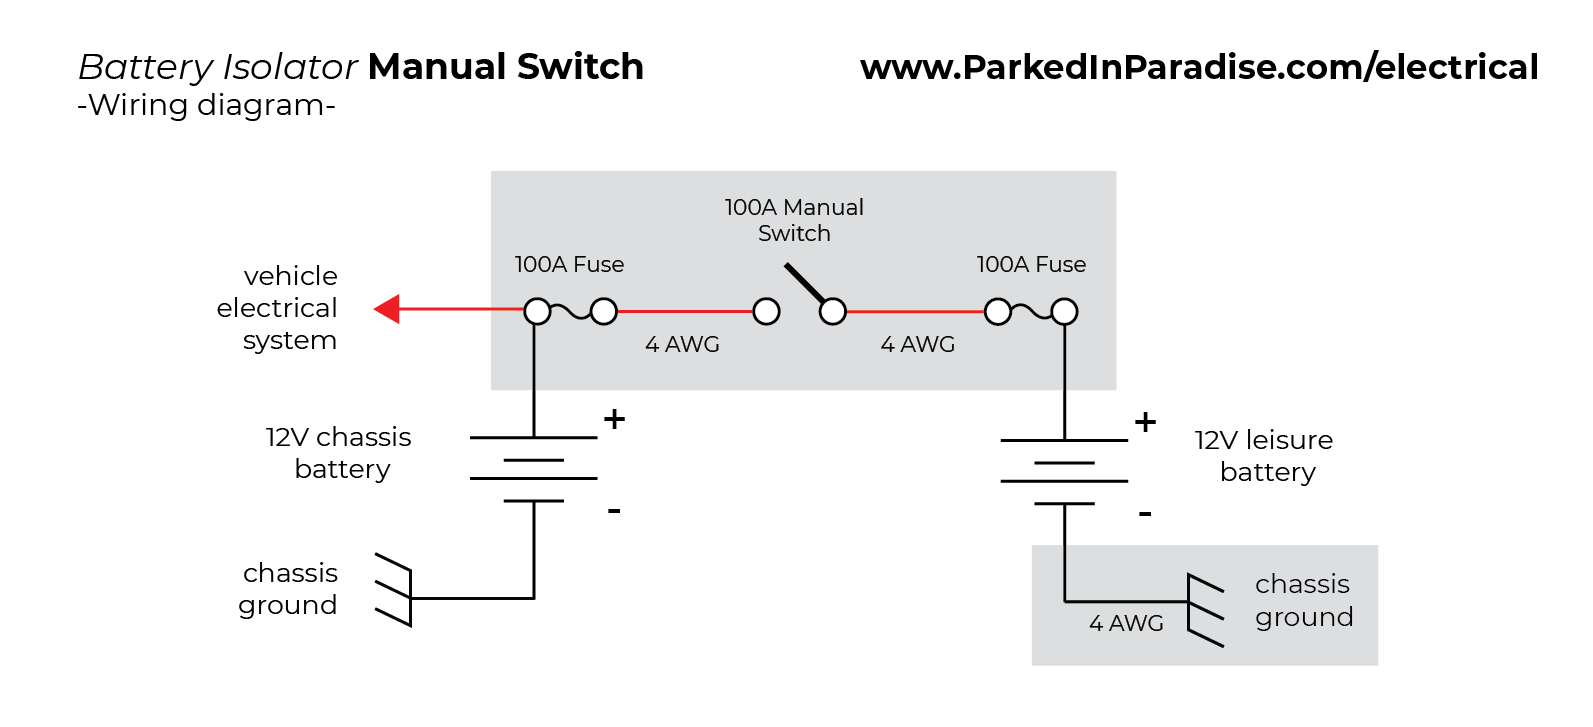 How To Install A Battery Isolator In Your Conversion Van | Parked In - 12V Battery Isolator Wiring Diagram